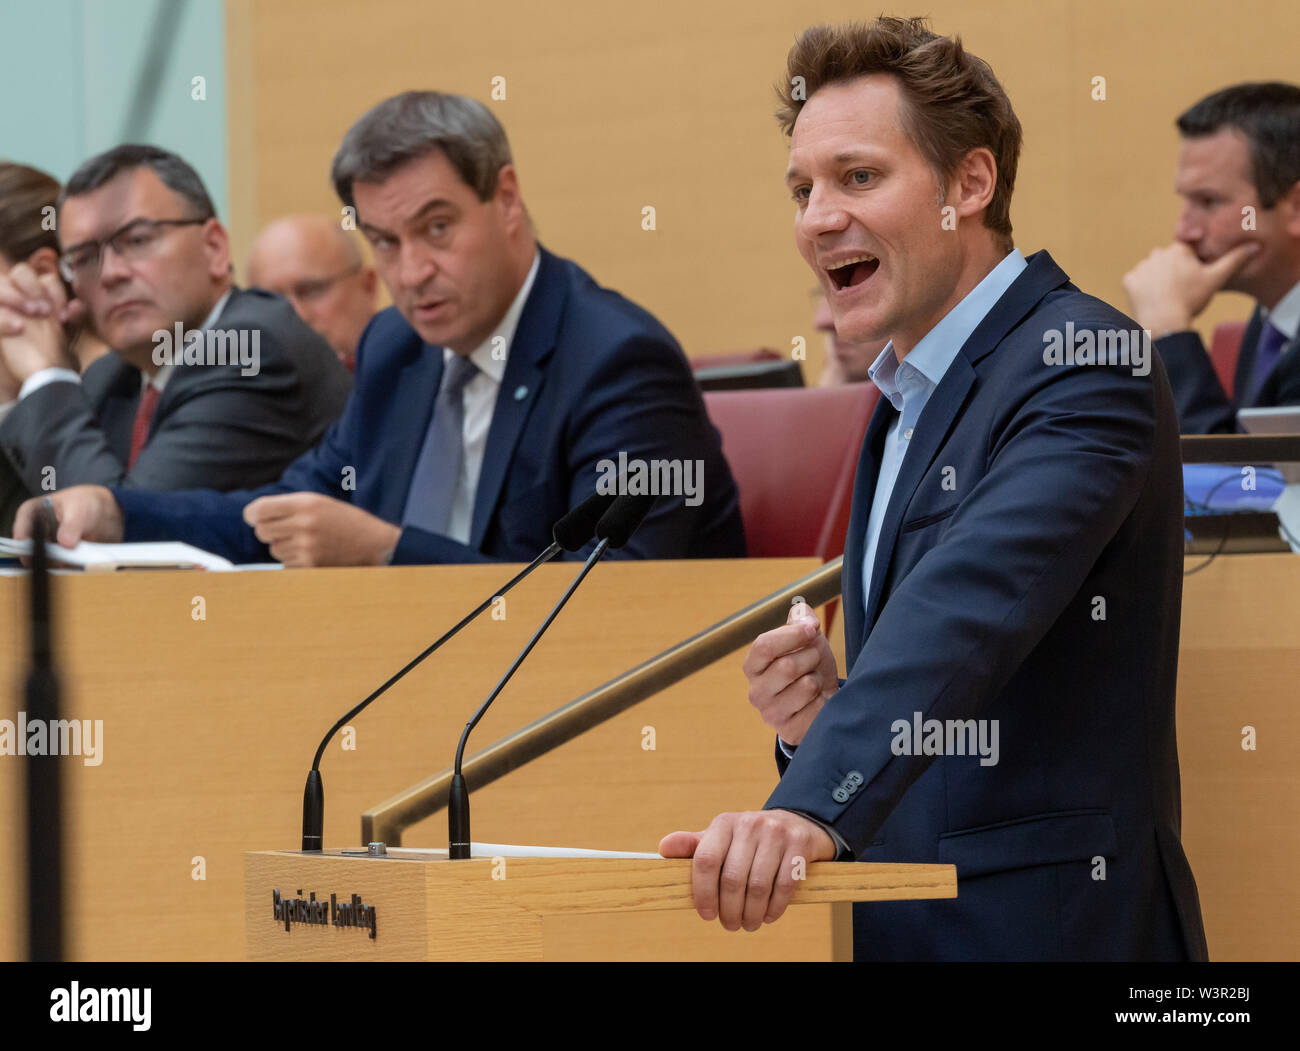 Munich, Germany. 17th July, 2019. Ludwig Hartmann, leader of the parliamentary group Bündnis 90/Die Grünen in the Bavarian parliament, will speak during the session of the Bavarian parliament. Behind him sits Markus Söder (CSU), Prime Minister of Bavaria. The main topics are the adoption of the legislative package for more environmental and species protection, including the draft law of the petition for a referendum 'Save the bees'. Credit: Peter Kneffel/dpa/Alamy Live News - Stock Image